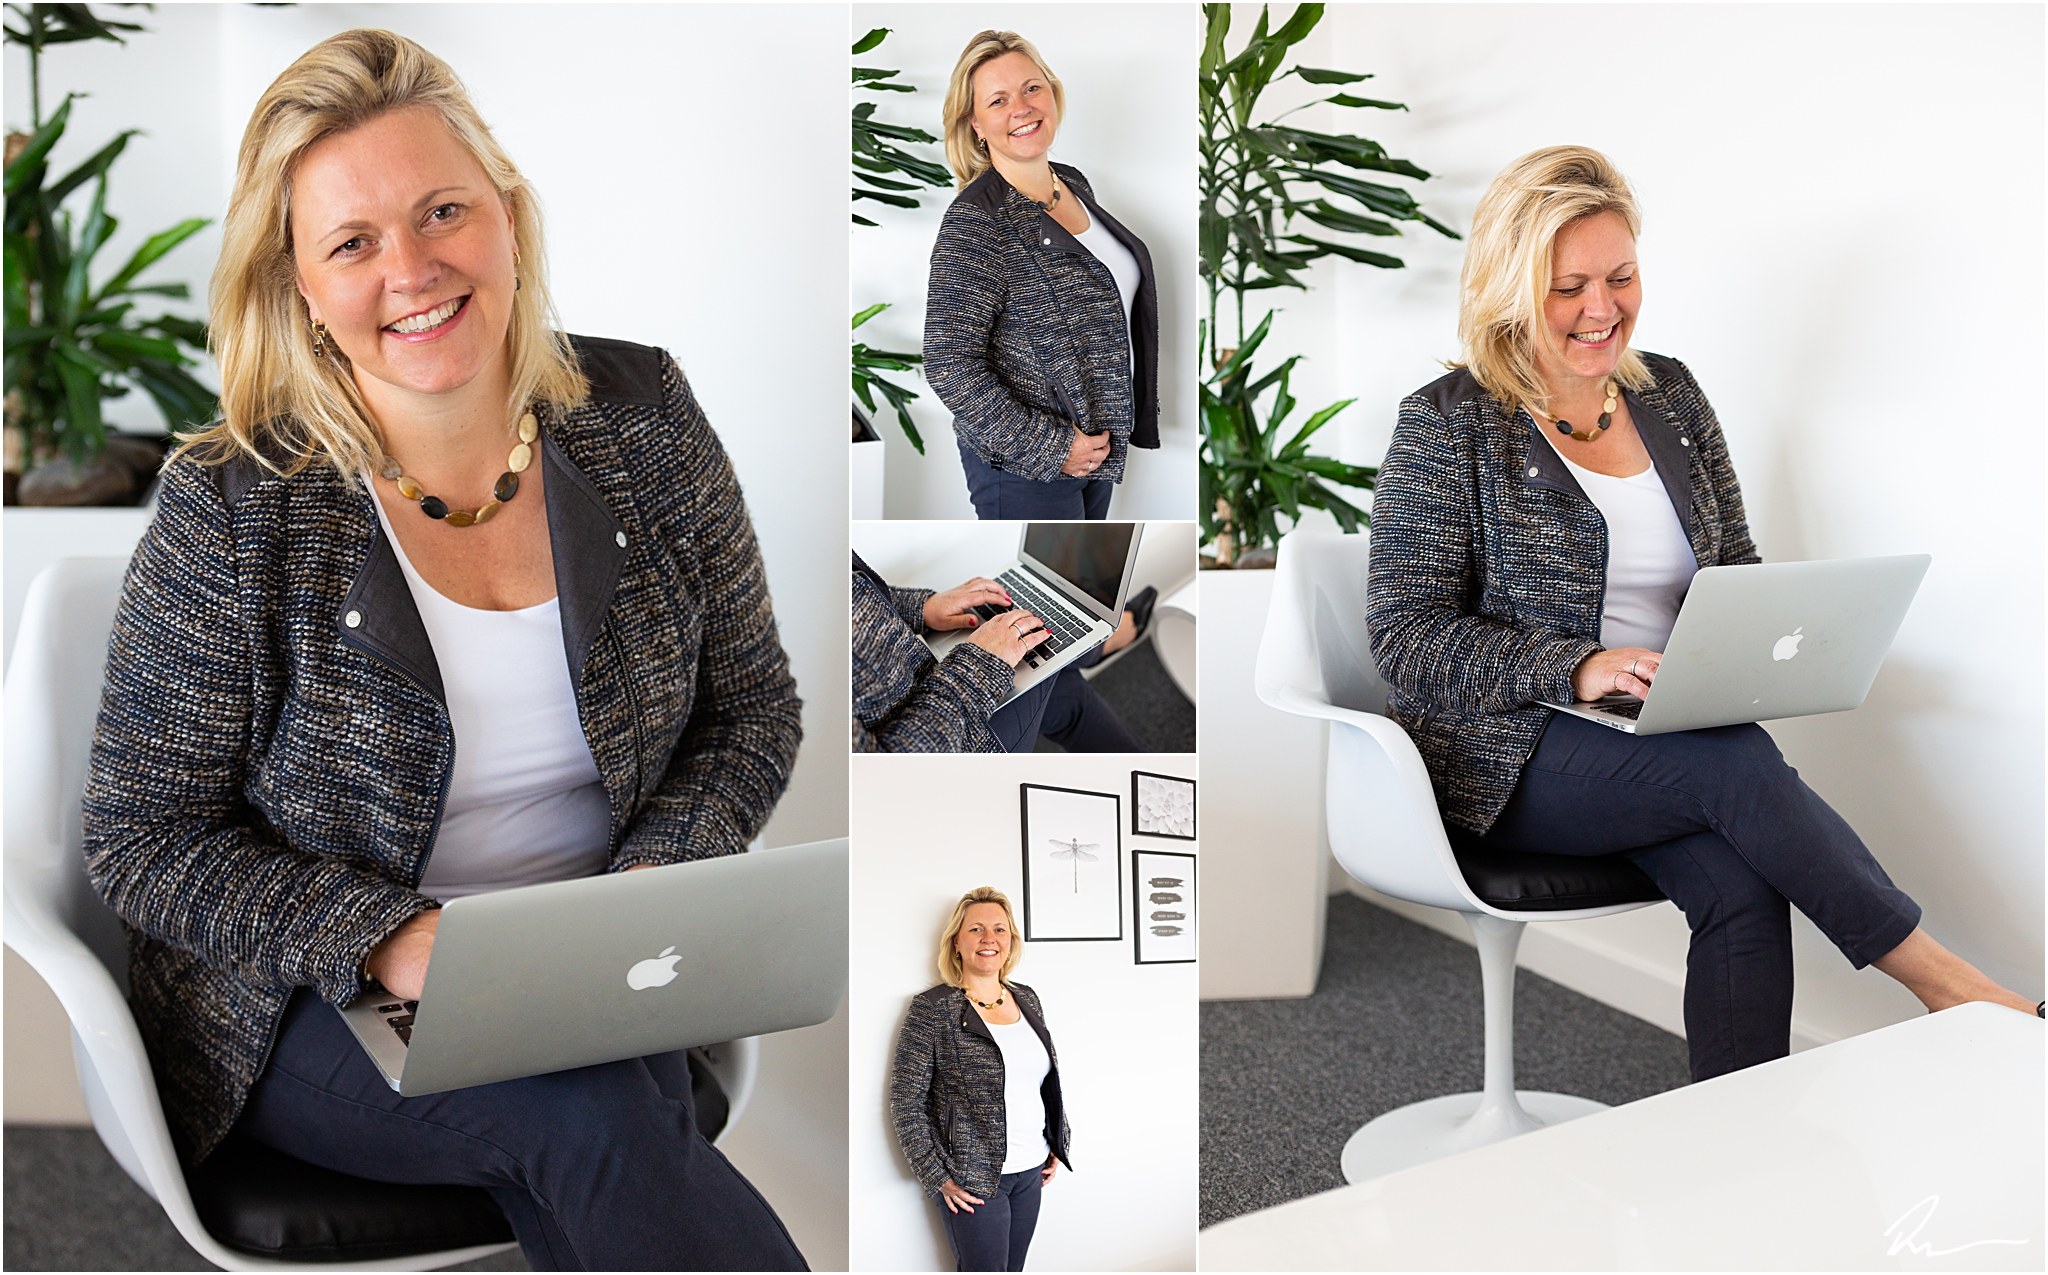 Inspired-Event-Management-Personal-Branding-Photography-Suffolk